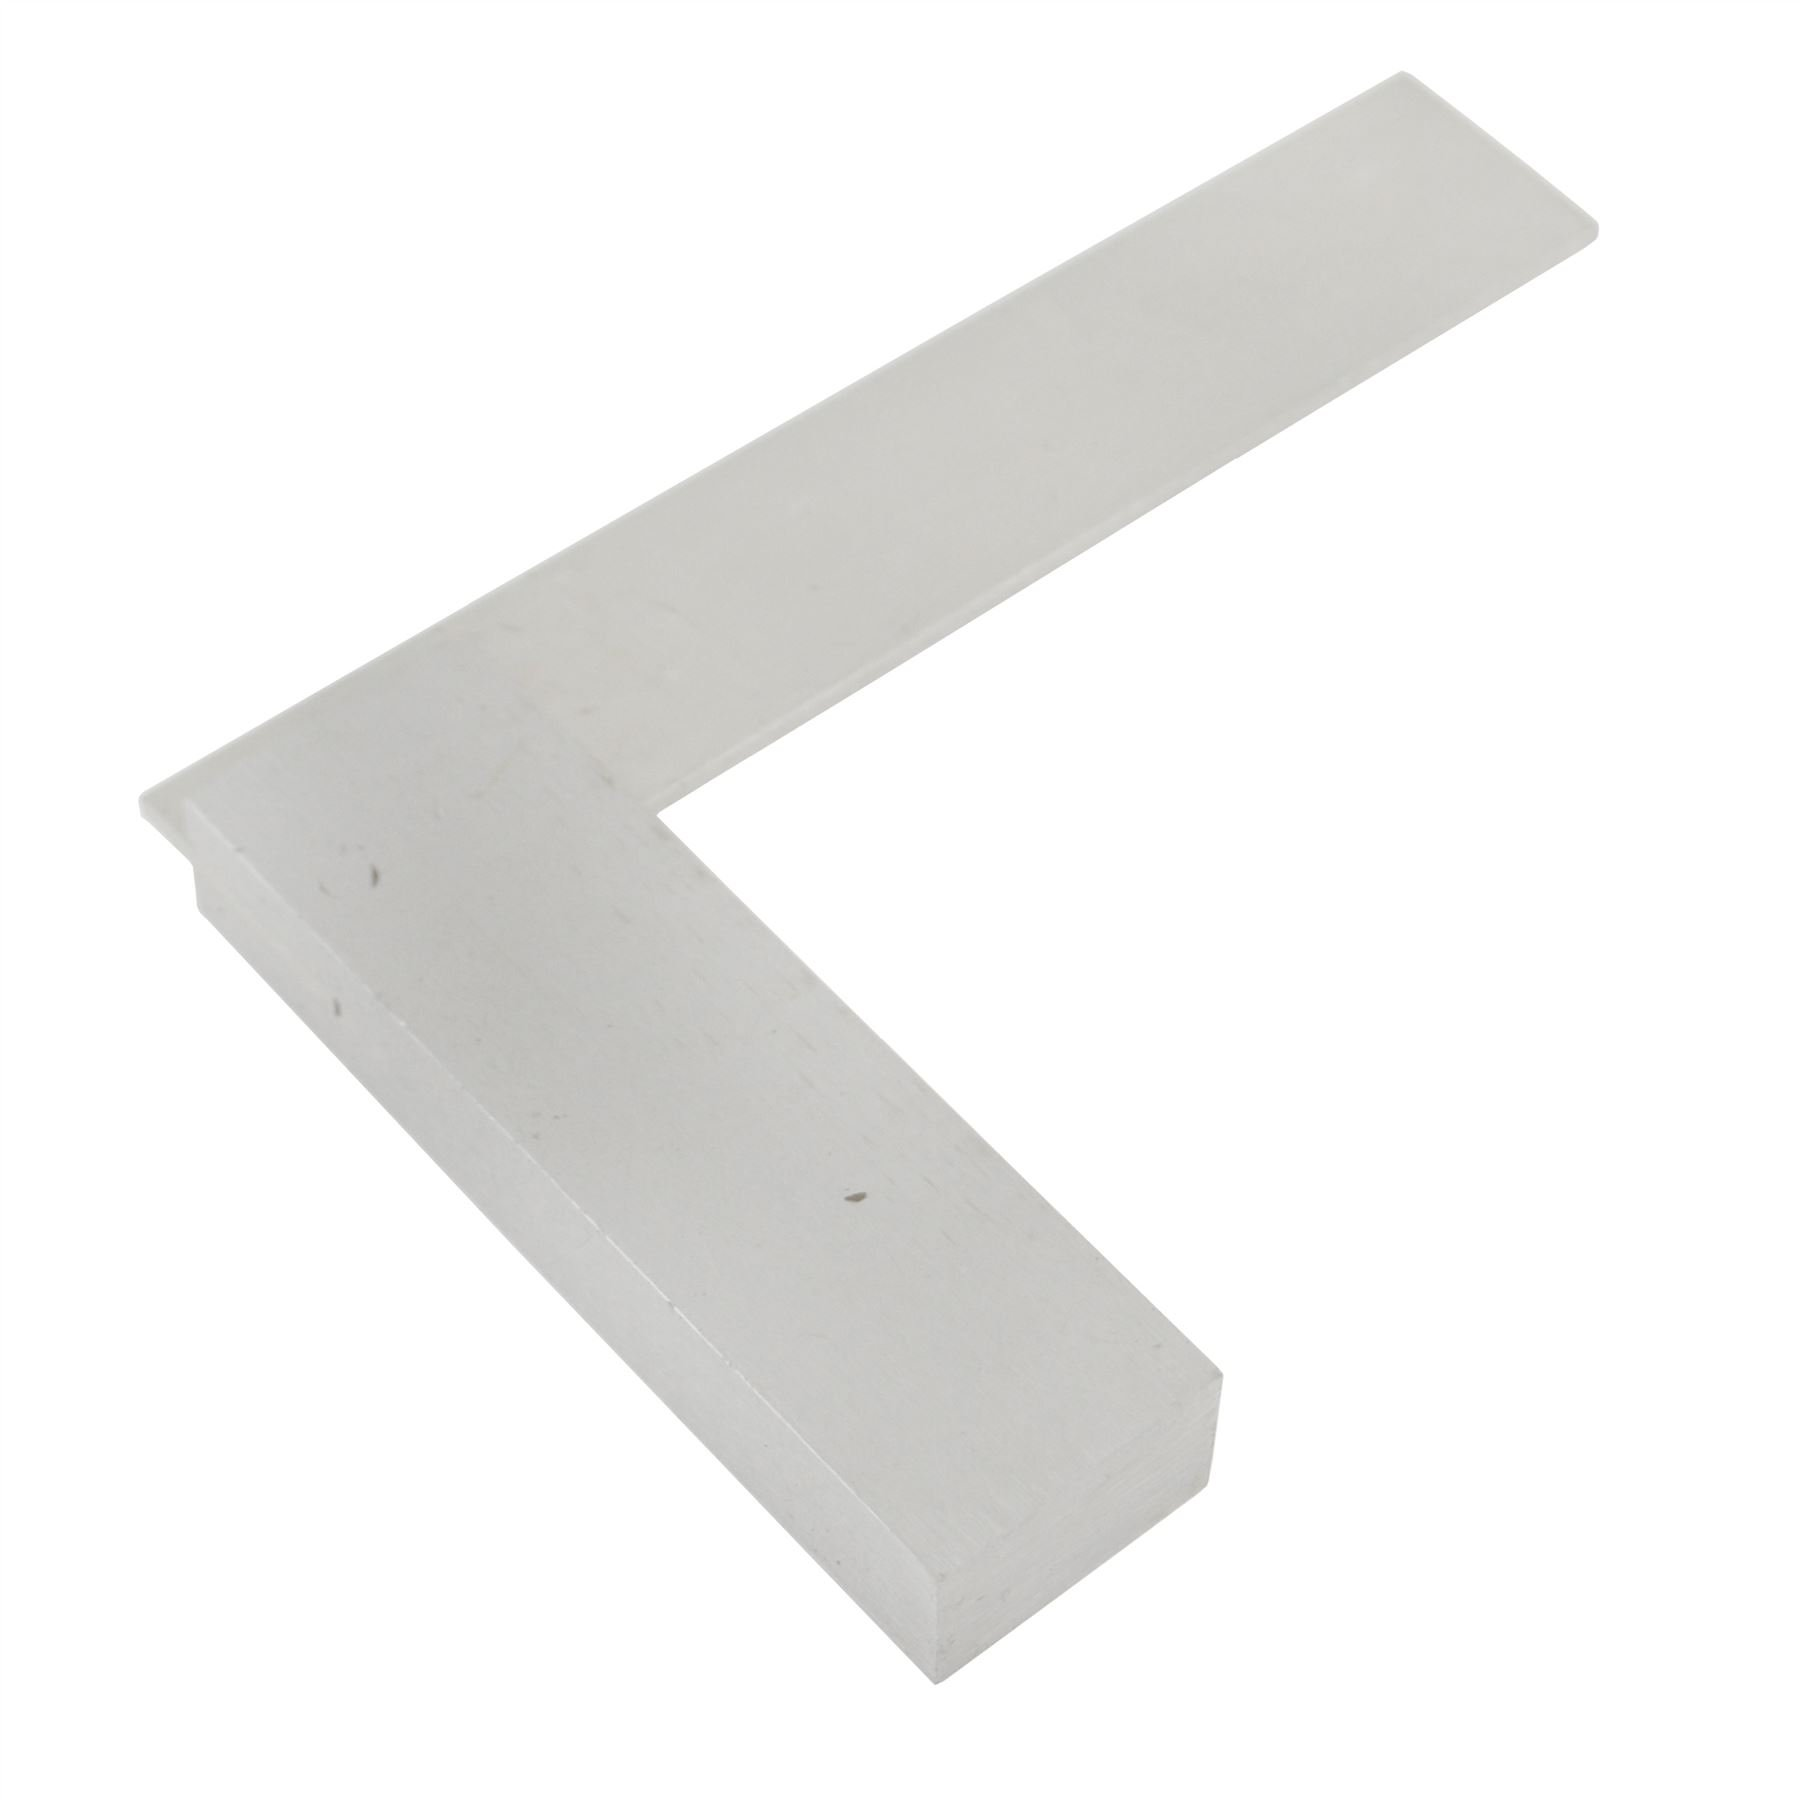 3'' (75mm) Engineers Tri Square Set Square Right Angle Straight Edge Steel Try SIL115